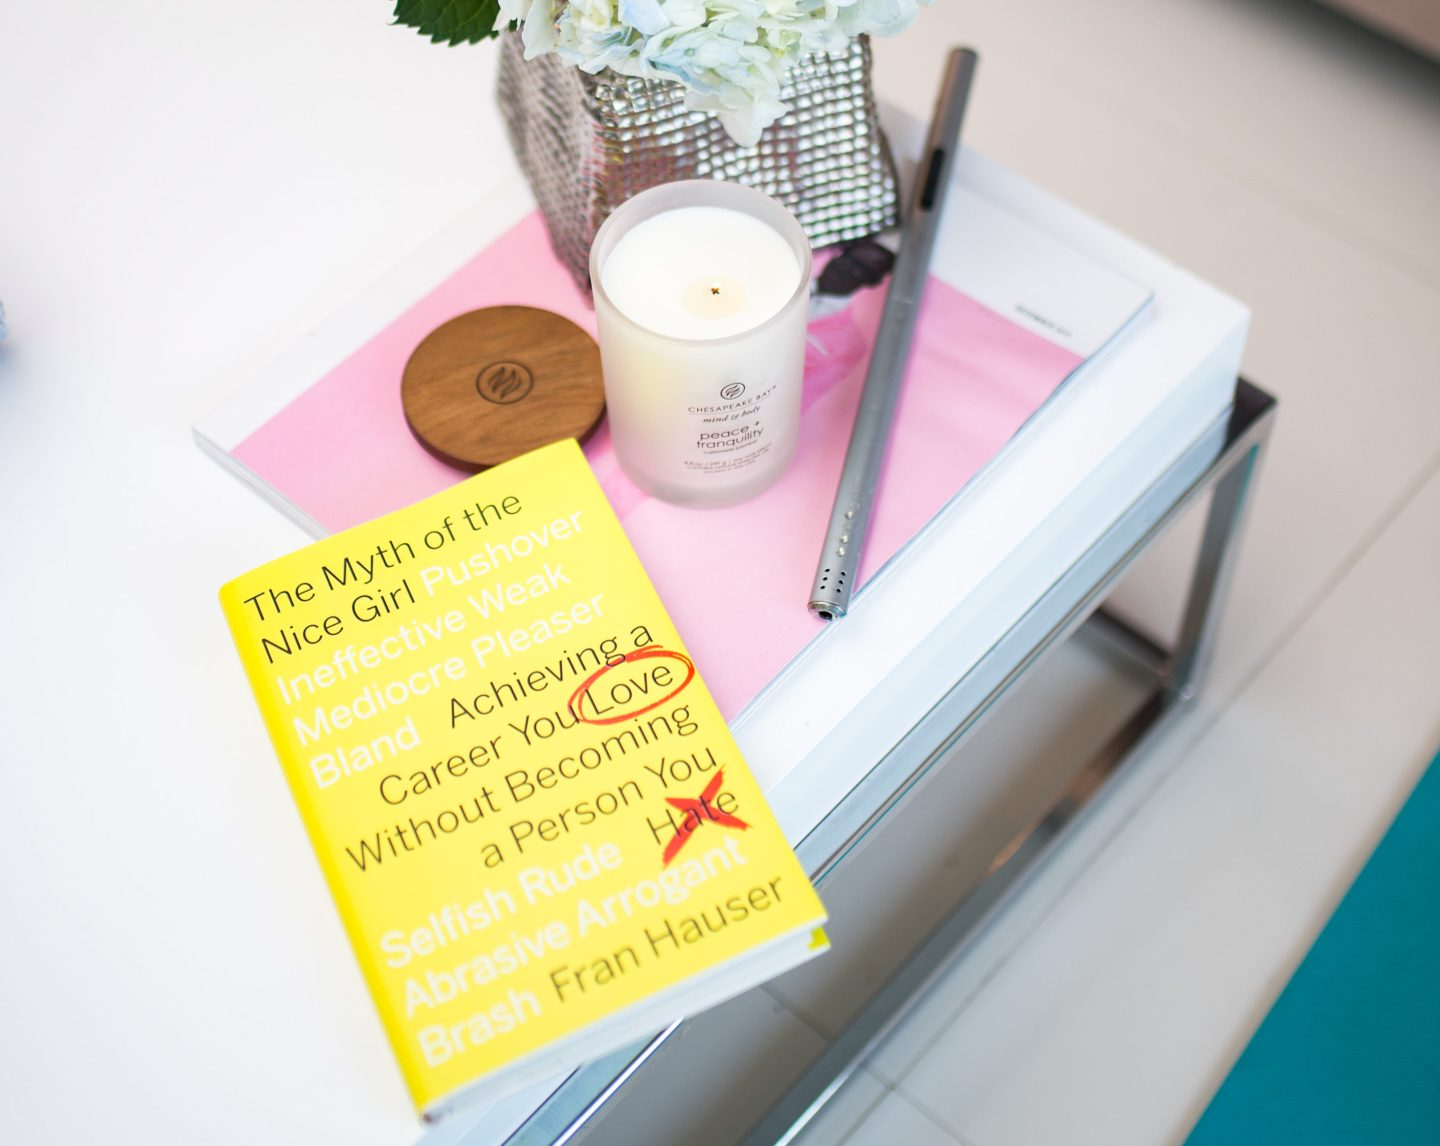 Her Health Month and Self Care Tips For Living Your Best Life!